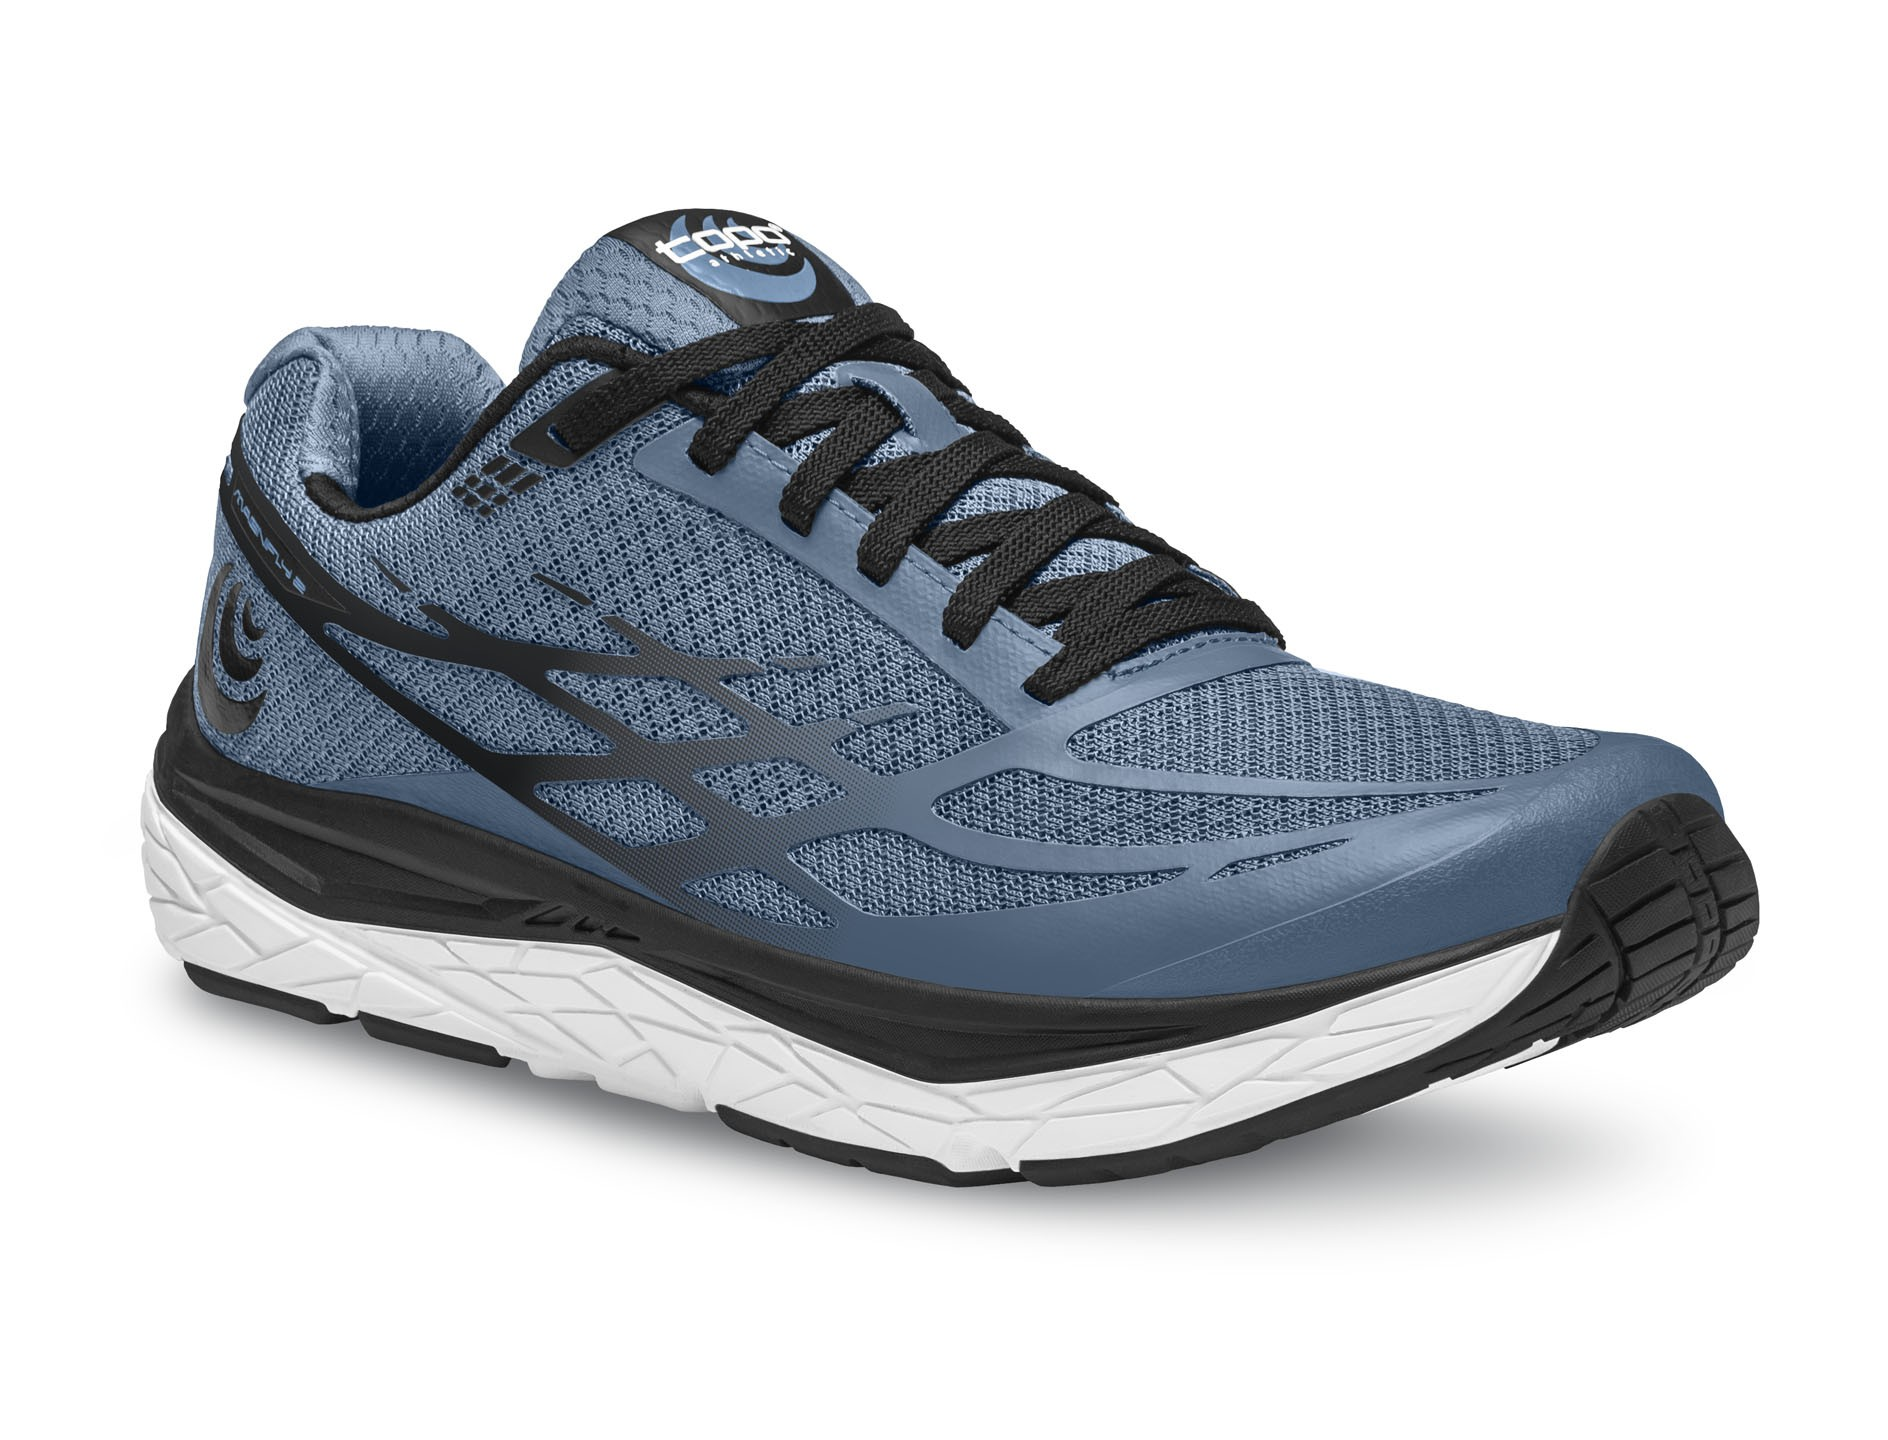 Runner's World - Men's Magnifly 2